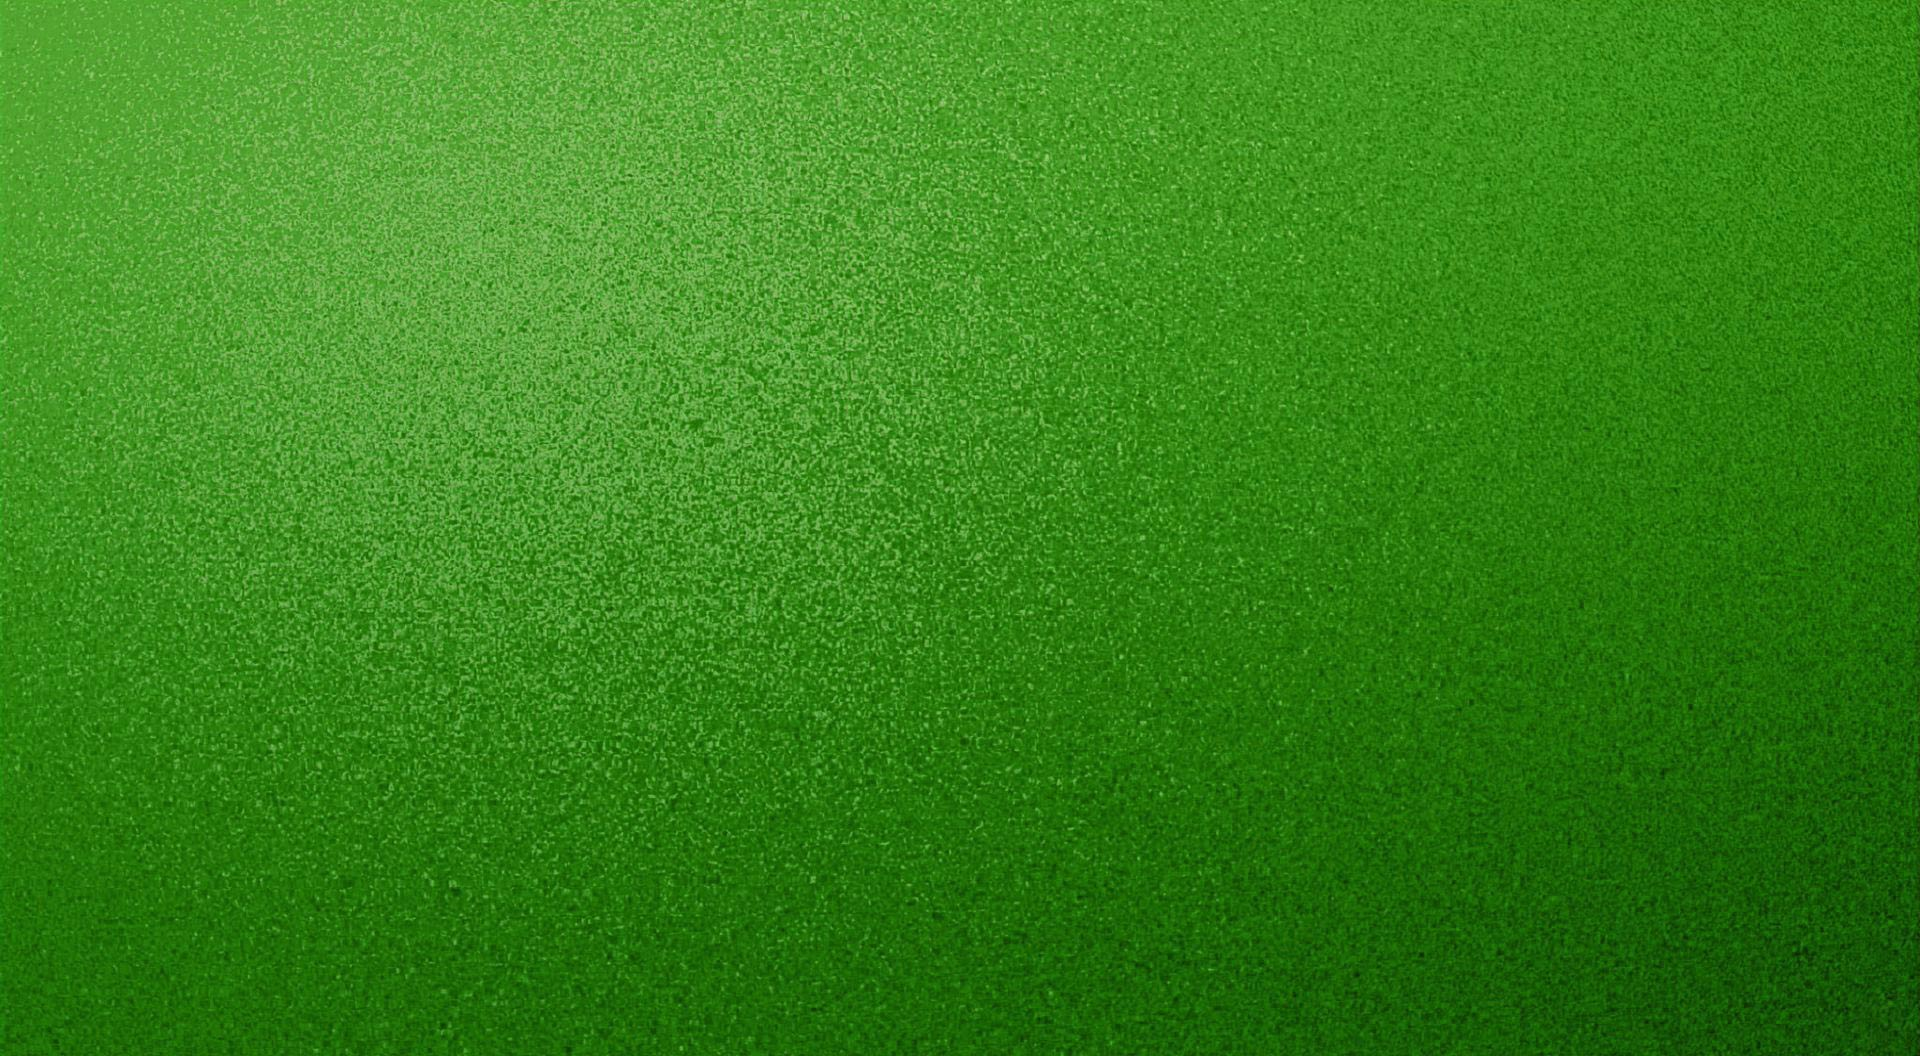 Green textured speckled desktop background wallpaper for use with Mac 1920x1056